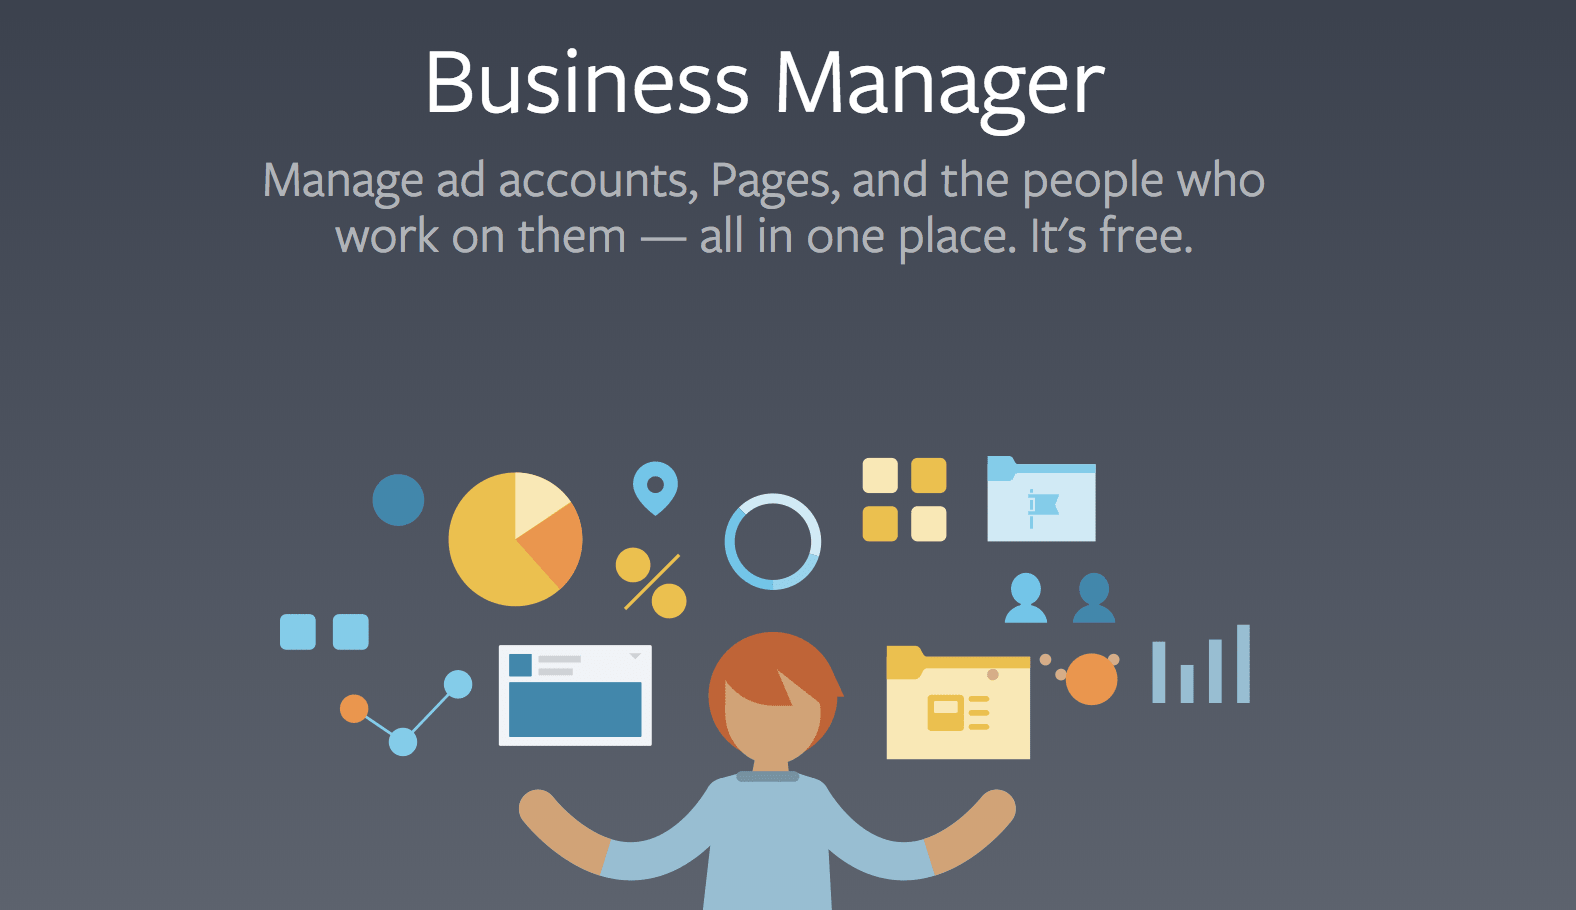 he-thong-Facebook-Business-Manager